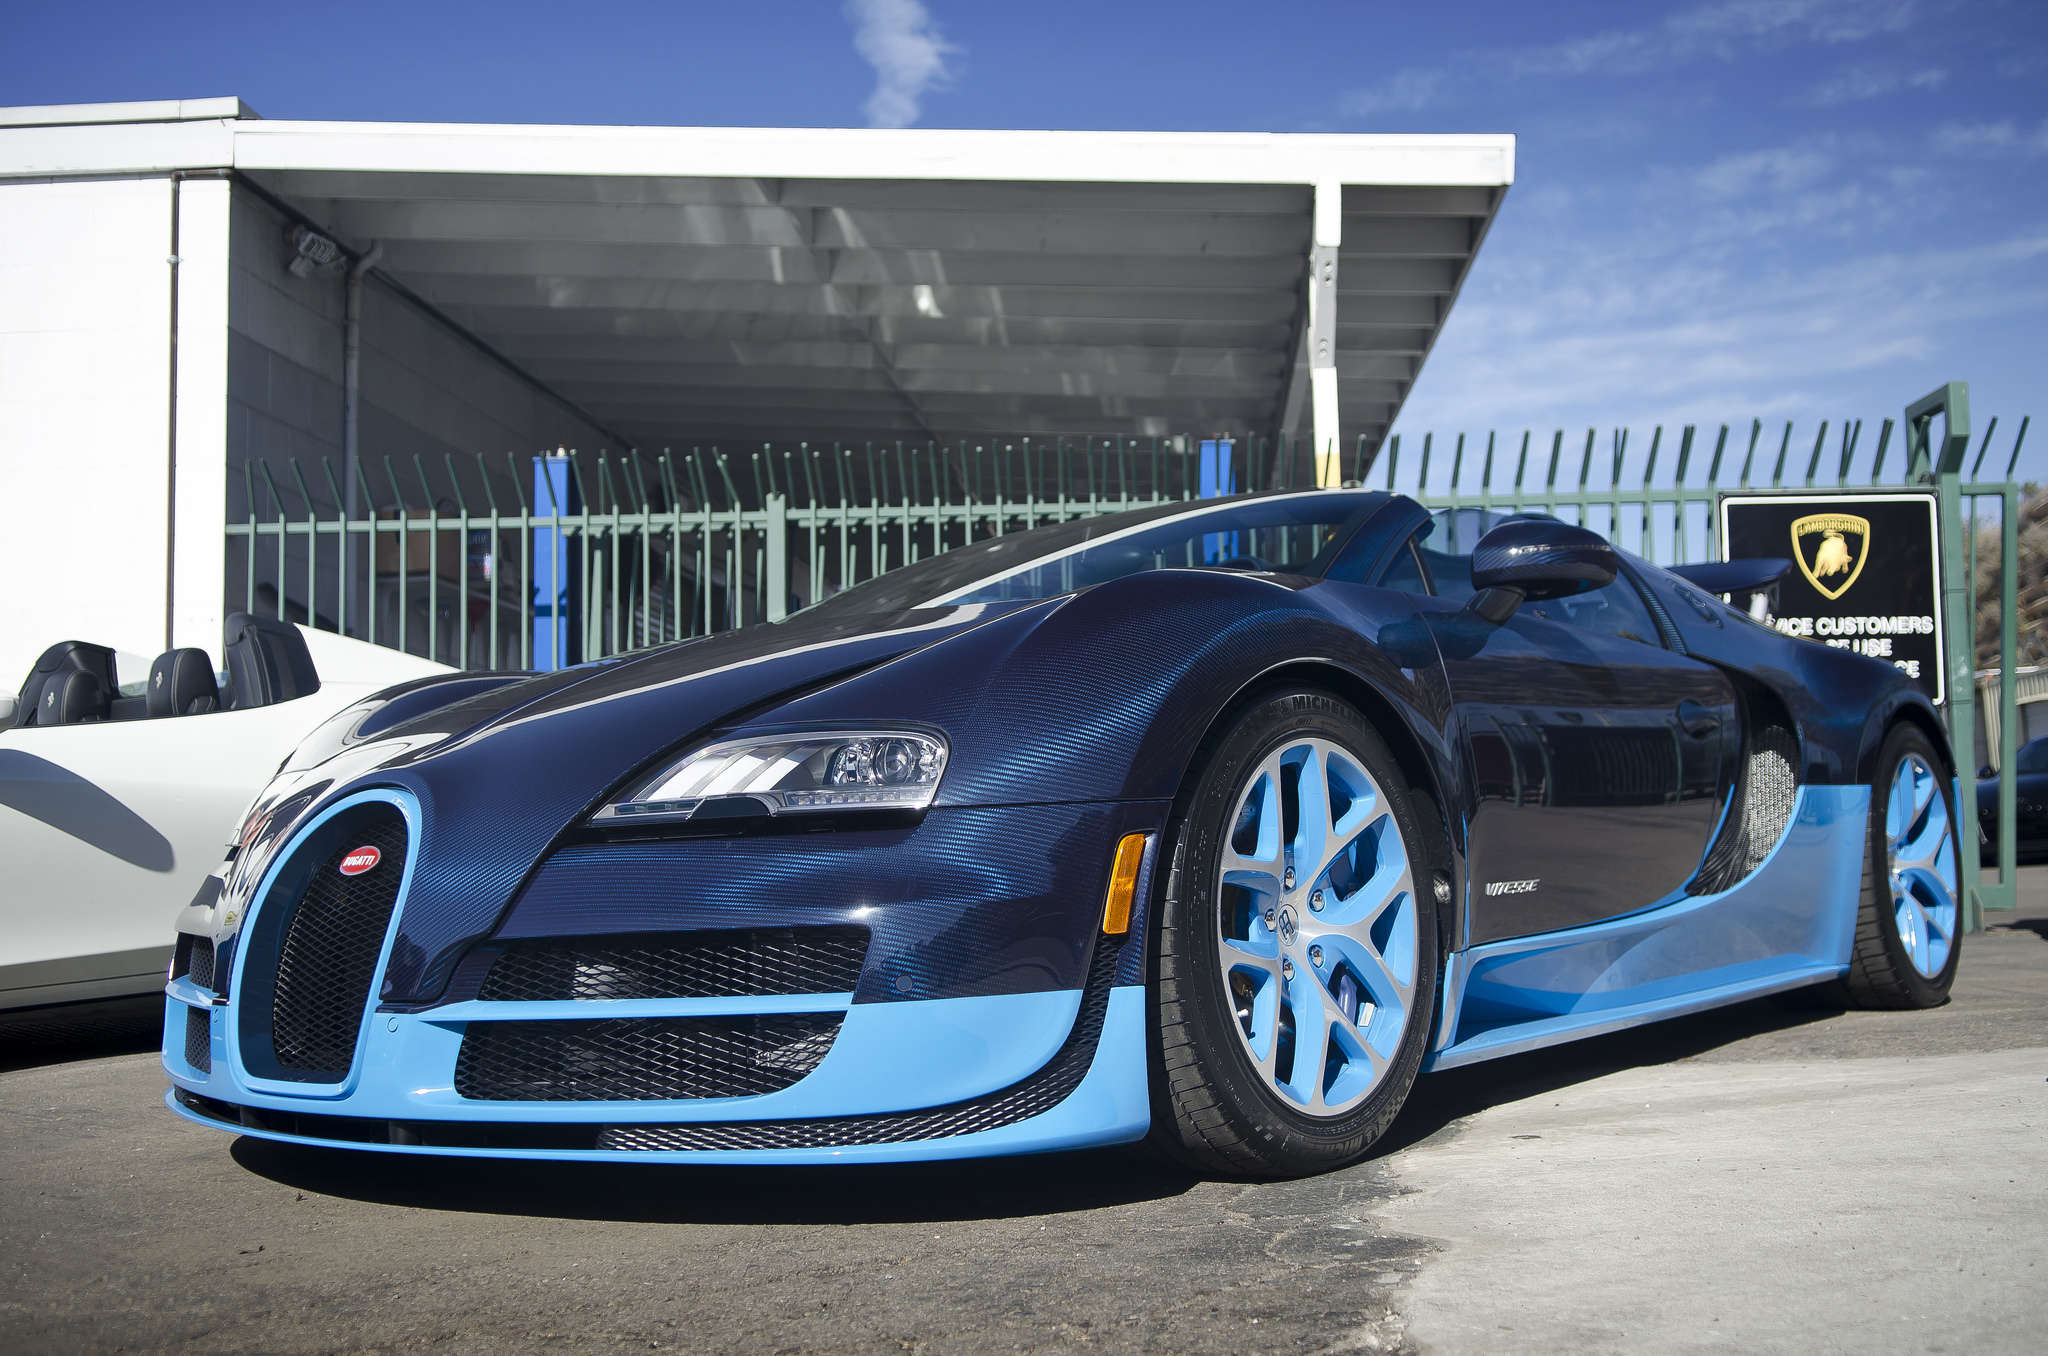 12299004025_e49faafb45_k Cool Bugatti Veyron Price In Uae 2015 Cars Trend